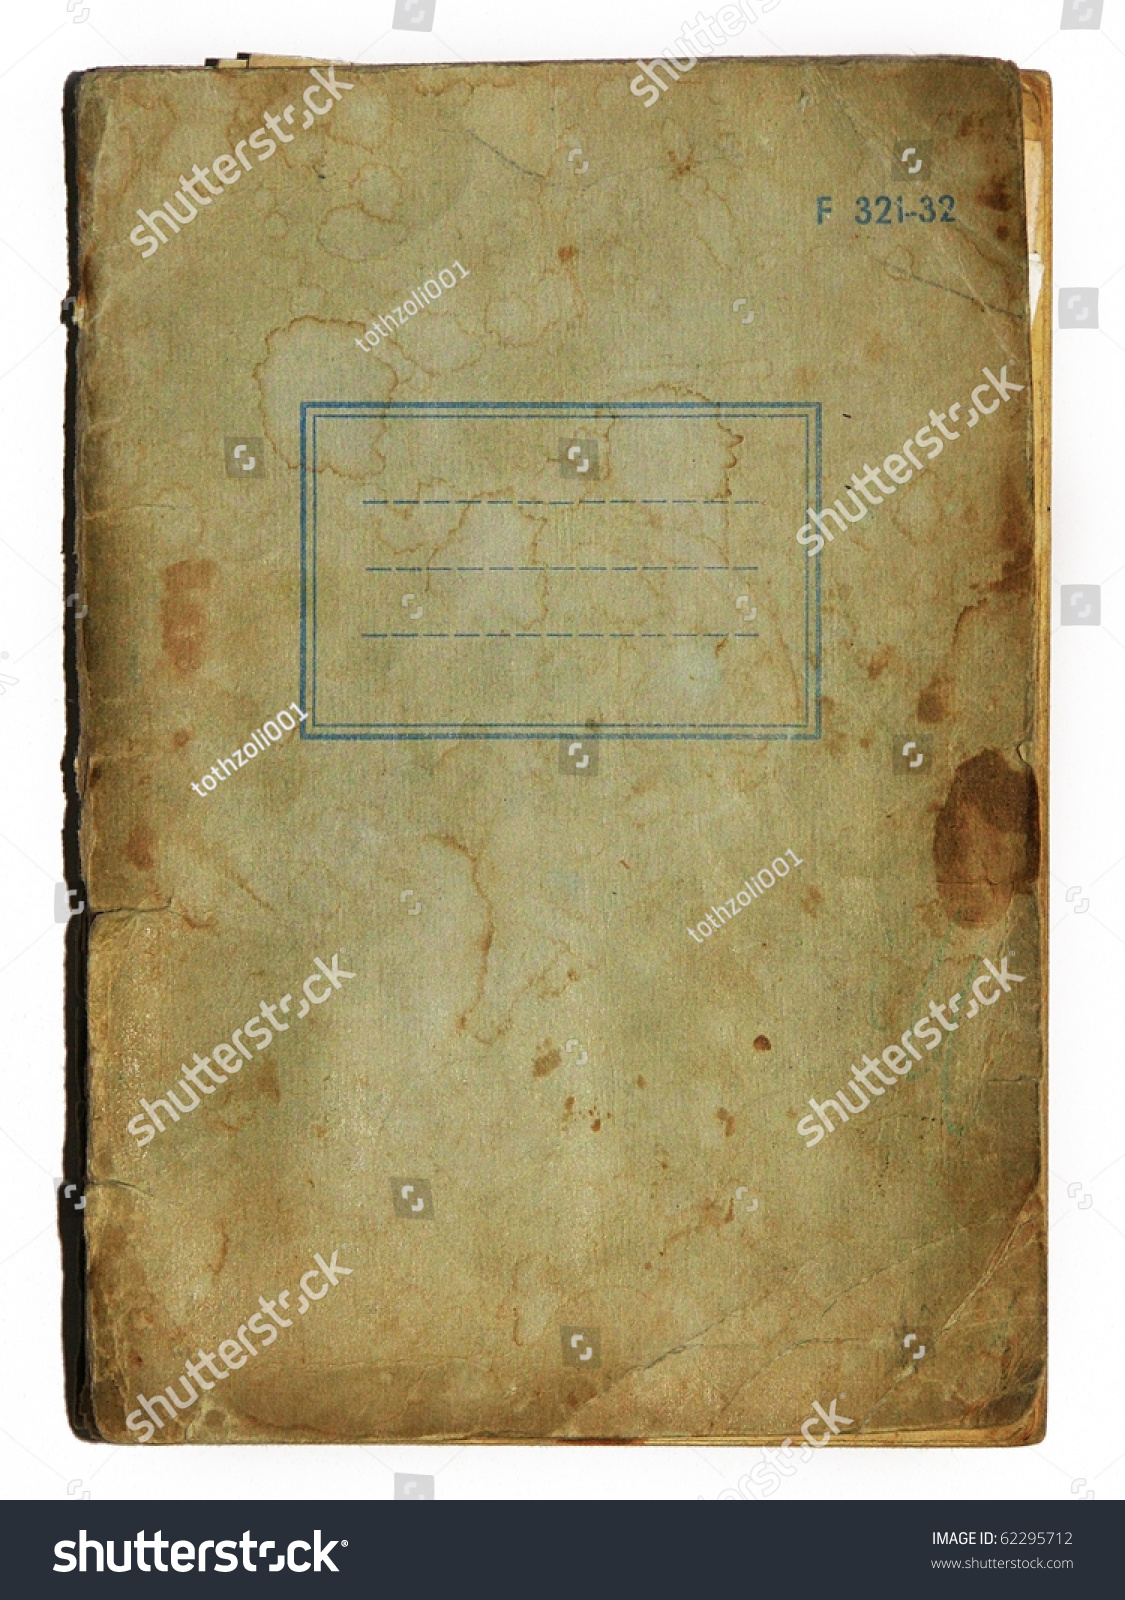 Old School Book Cover : Old school exercise book cover stock photo